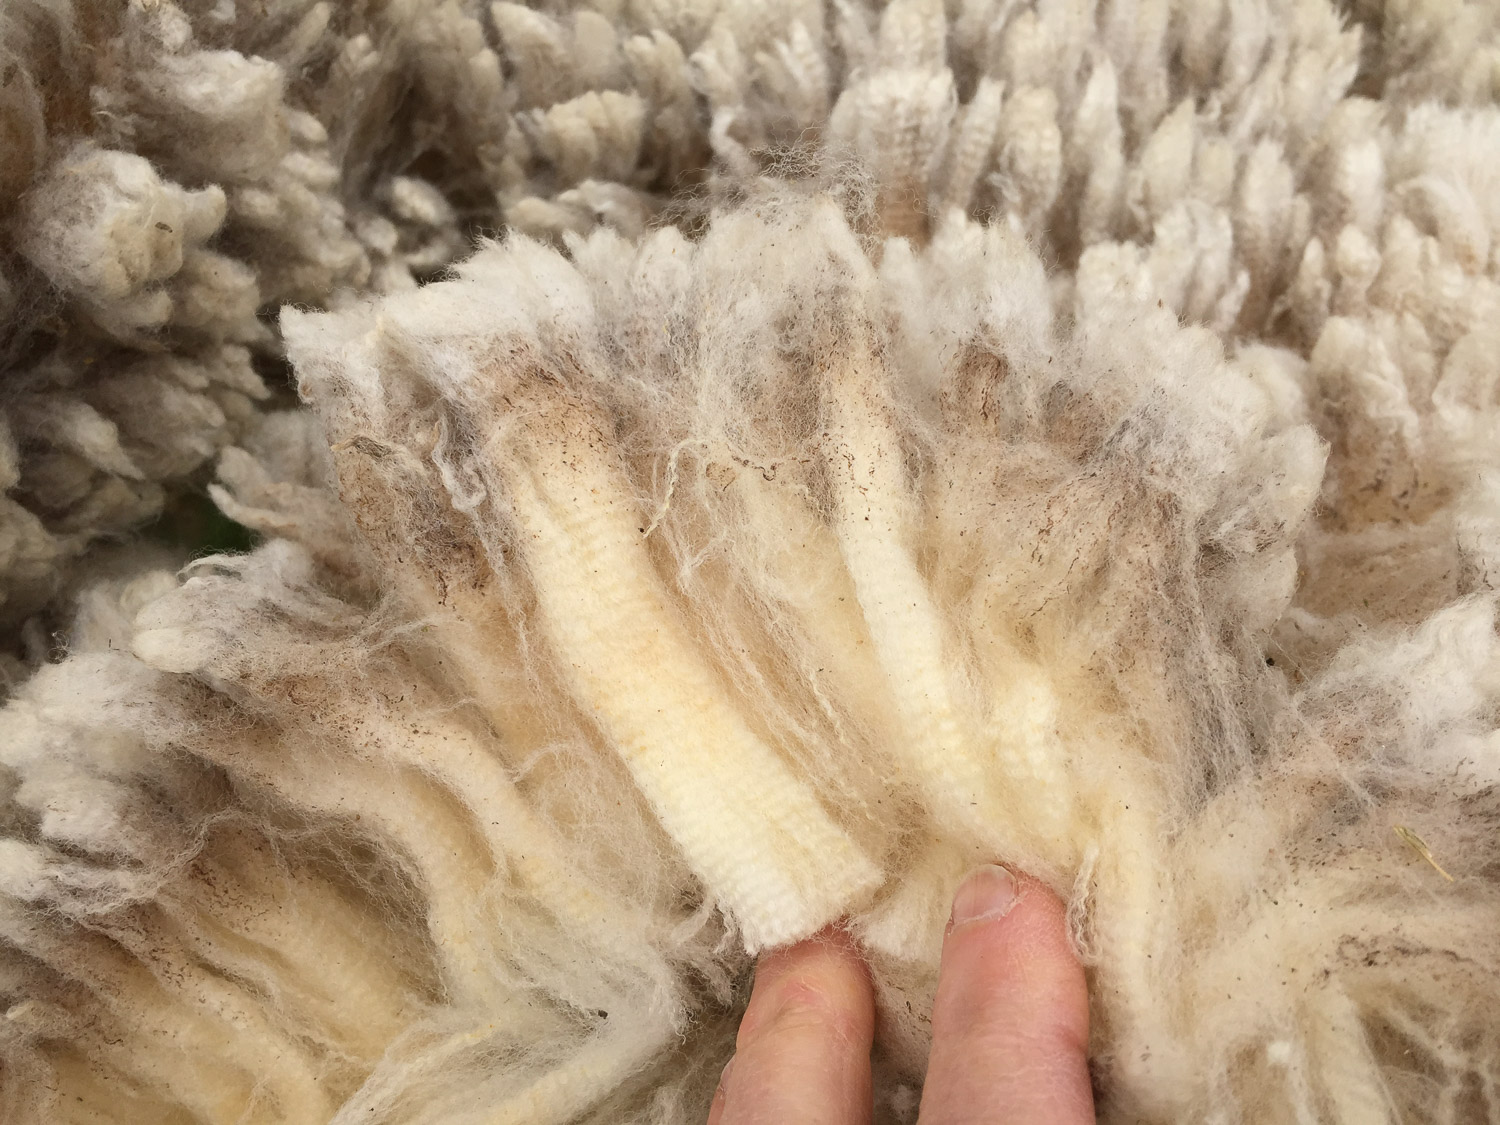 Staples of Timm Ranch fleece.